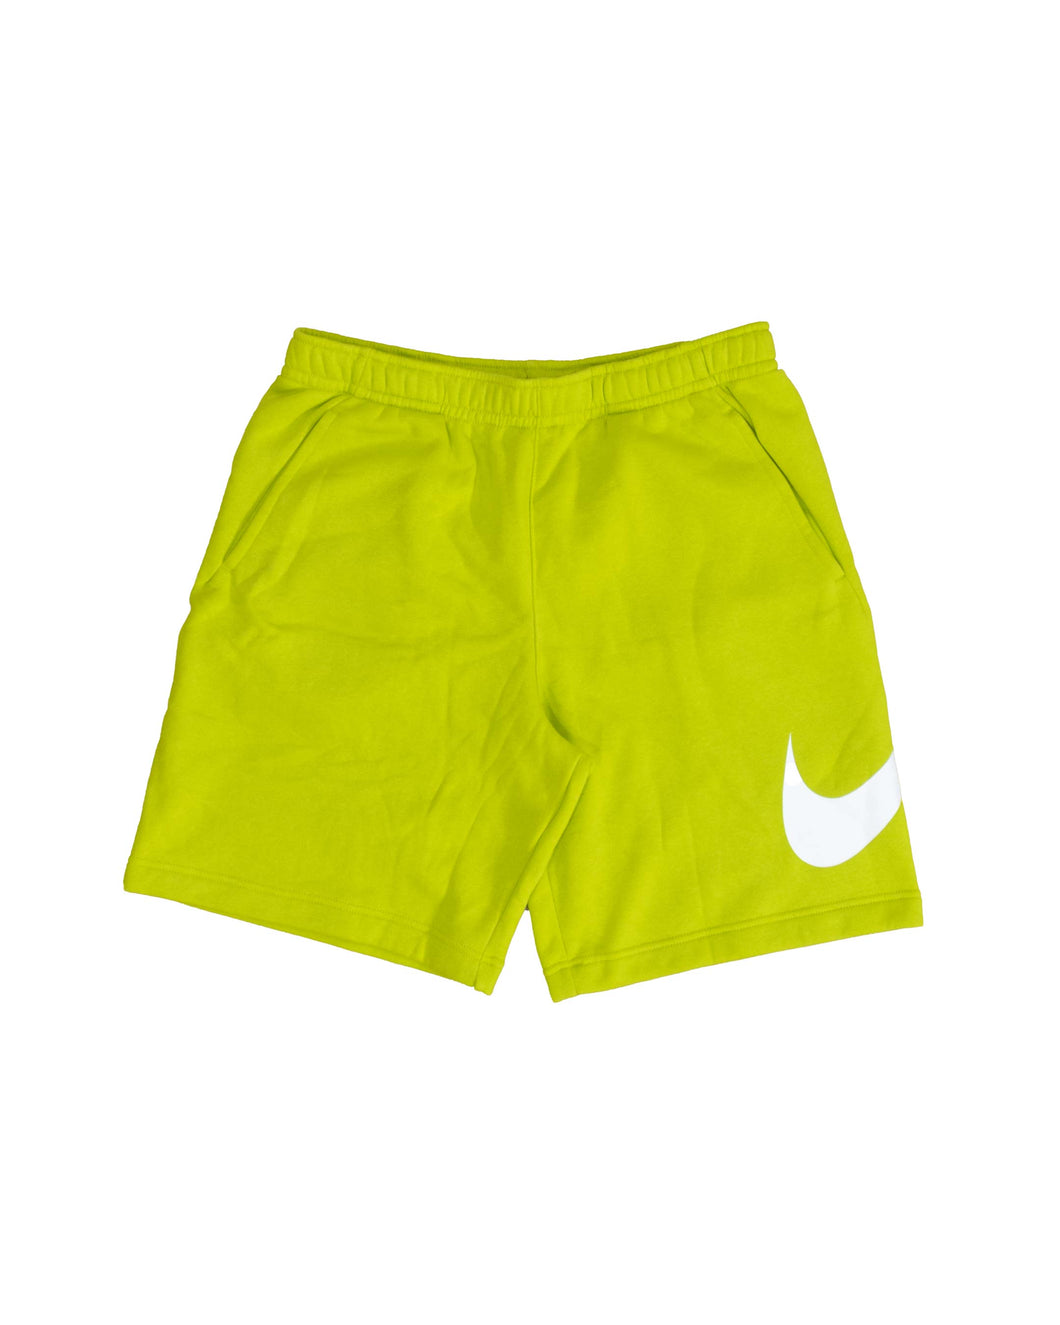 Nike Short Club Bb Gx Bright Cactus